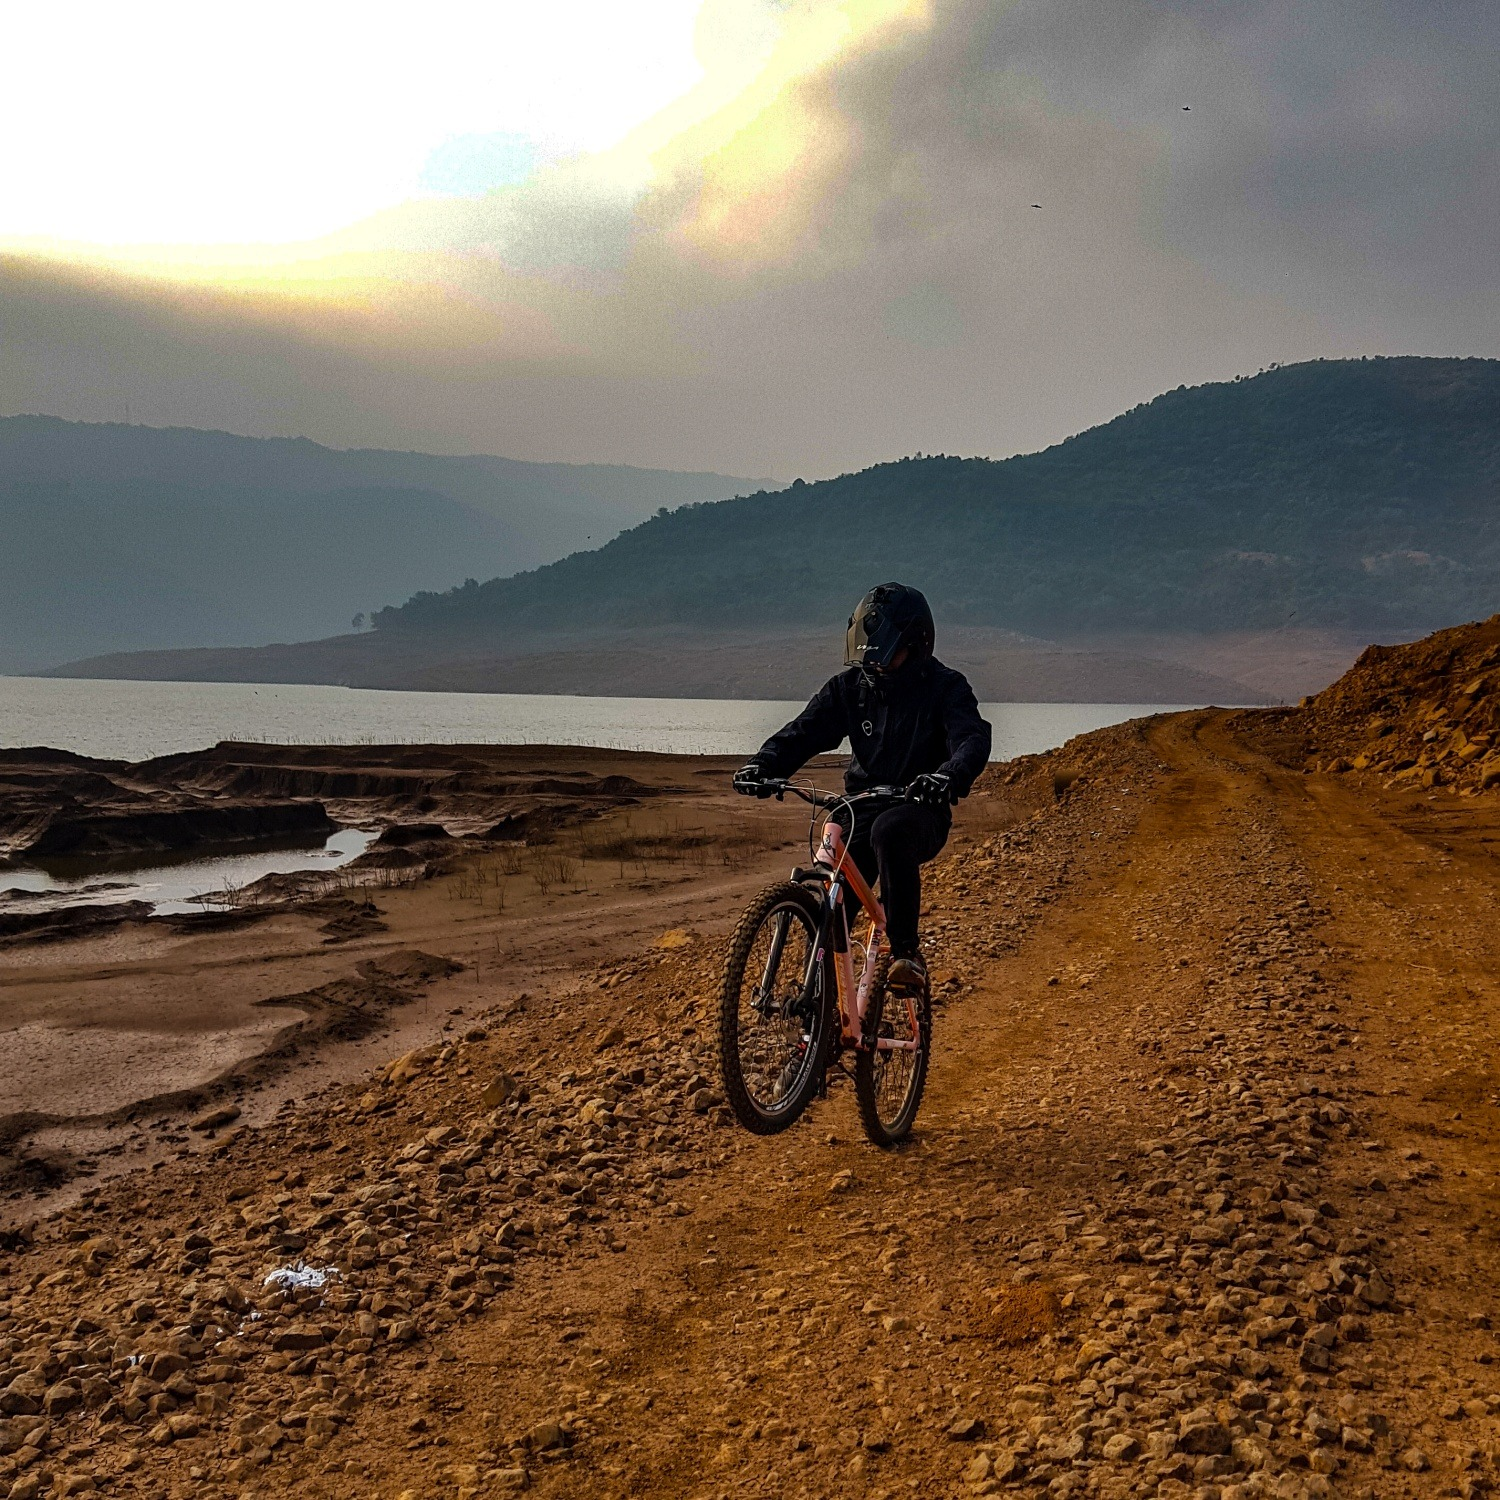 Mountain biking in Pune Temghar